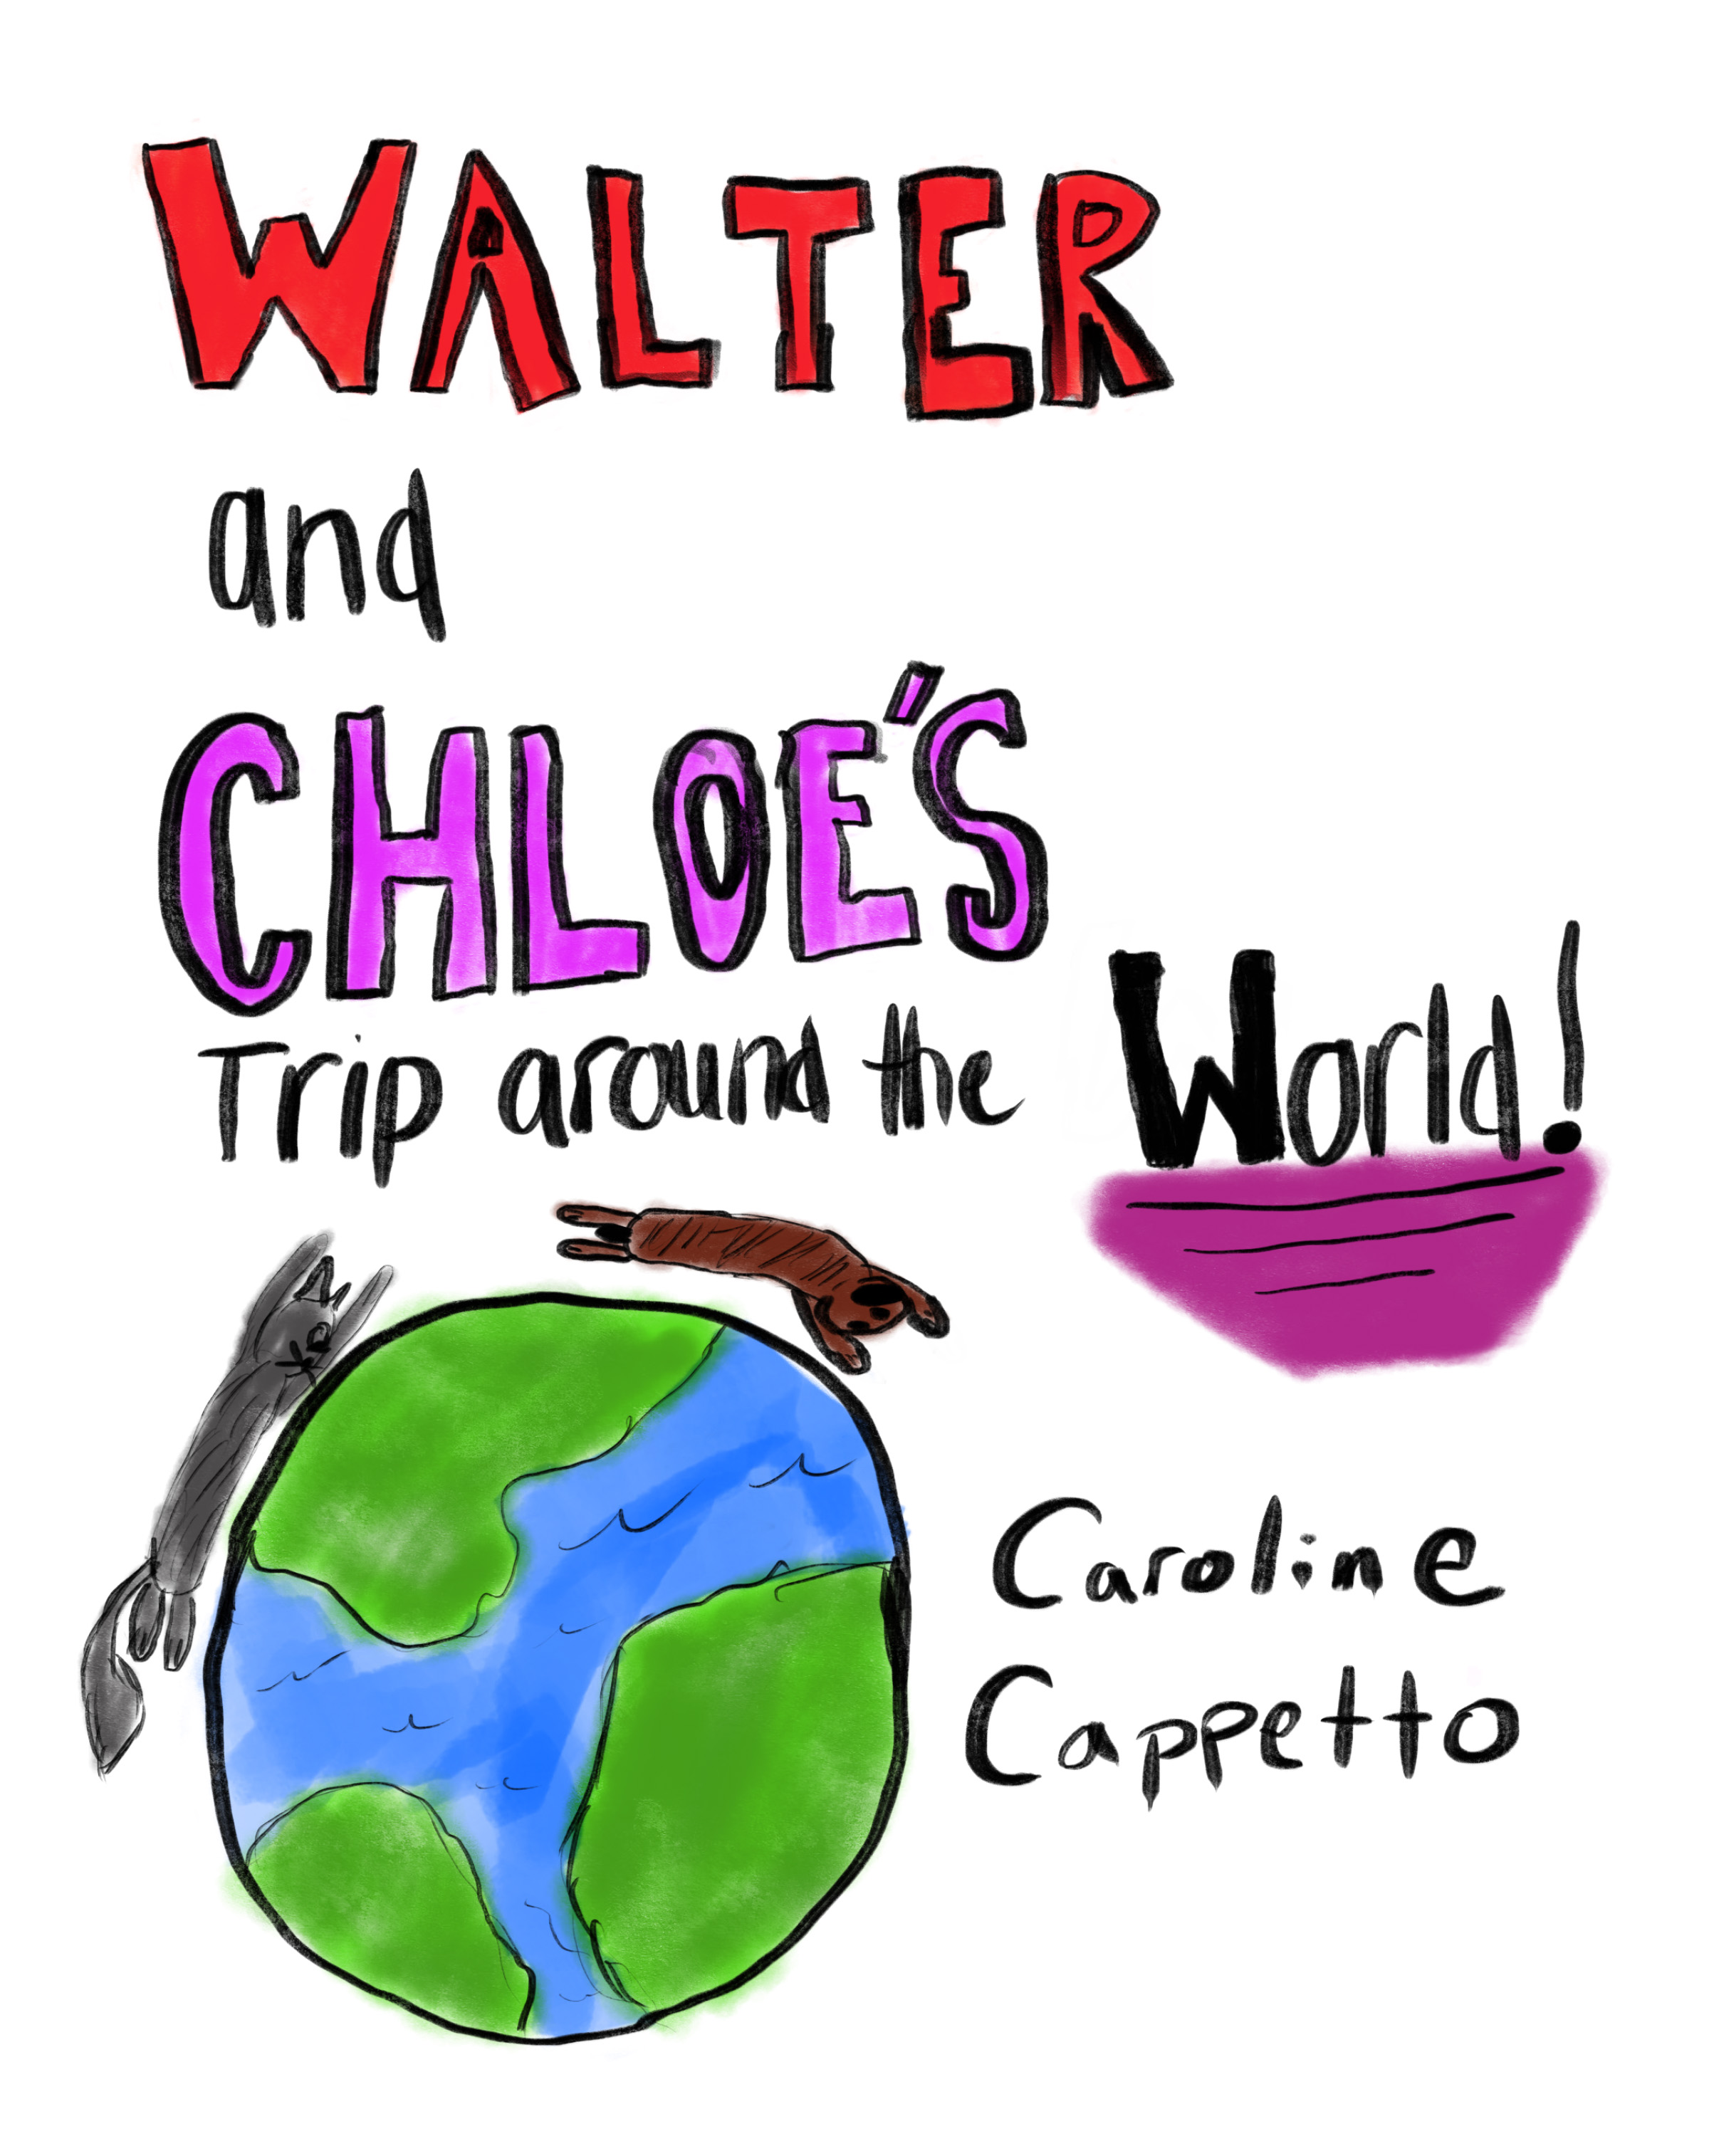 Walter and Chloe's Trip Around the World    by Caroline Cappetto